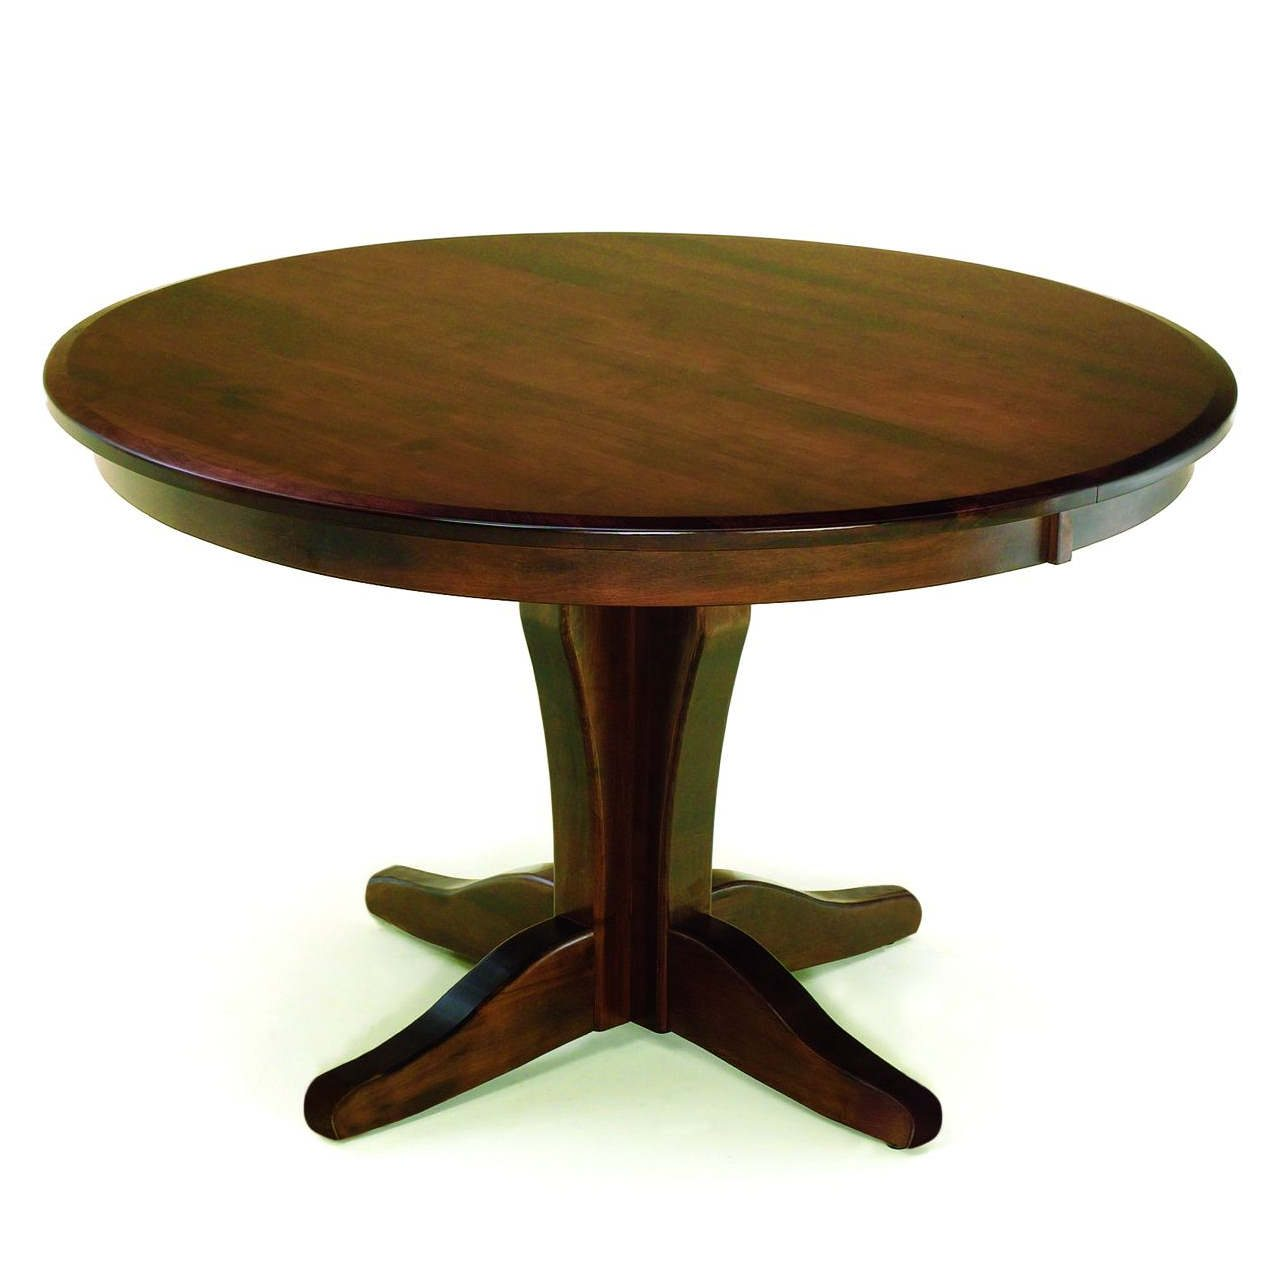 Vintage Round Dining Table Clear Creek Amish Furniture